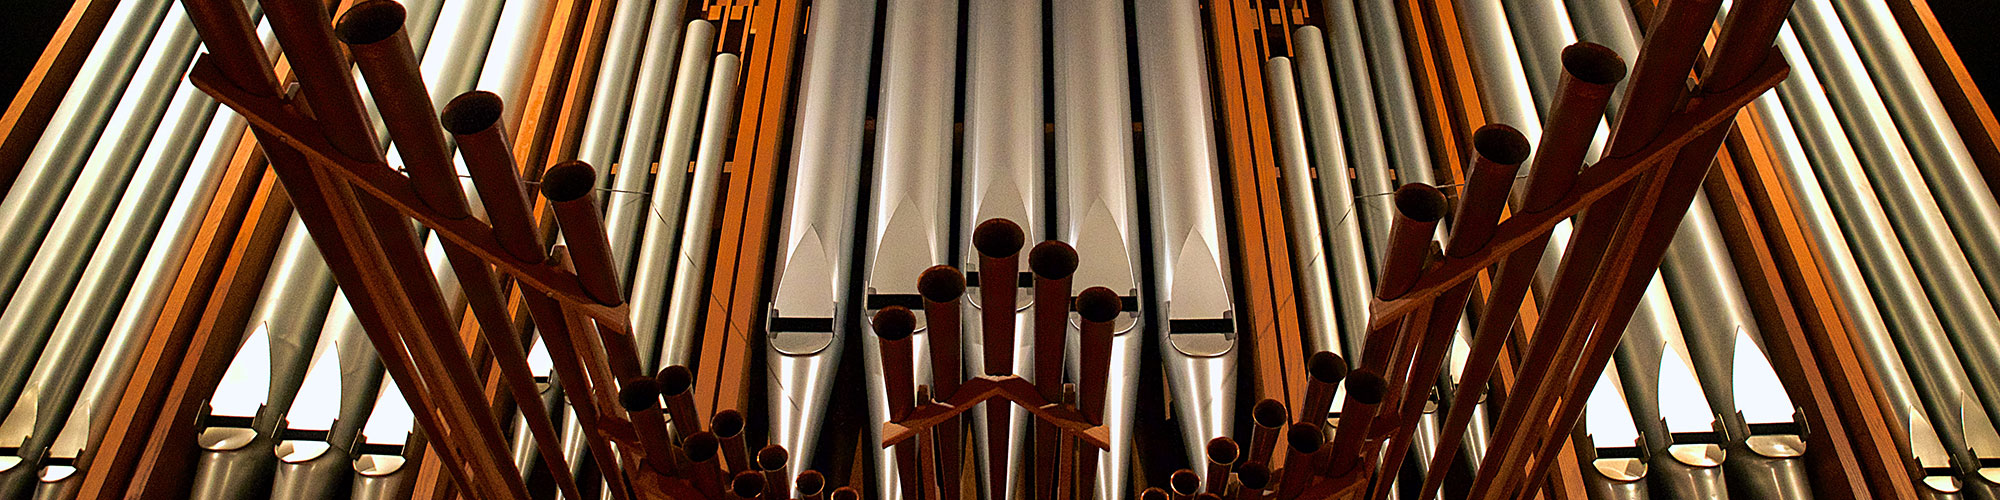 Mount Olive Church Organ pipes